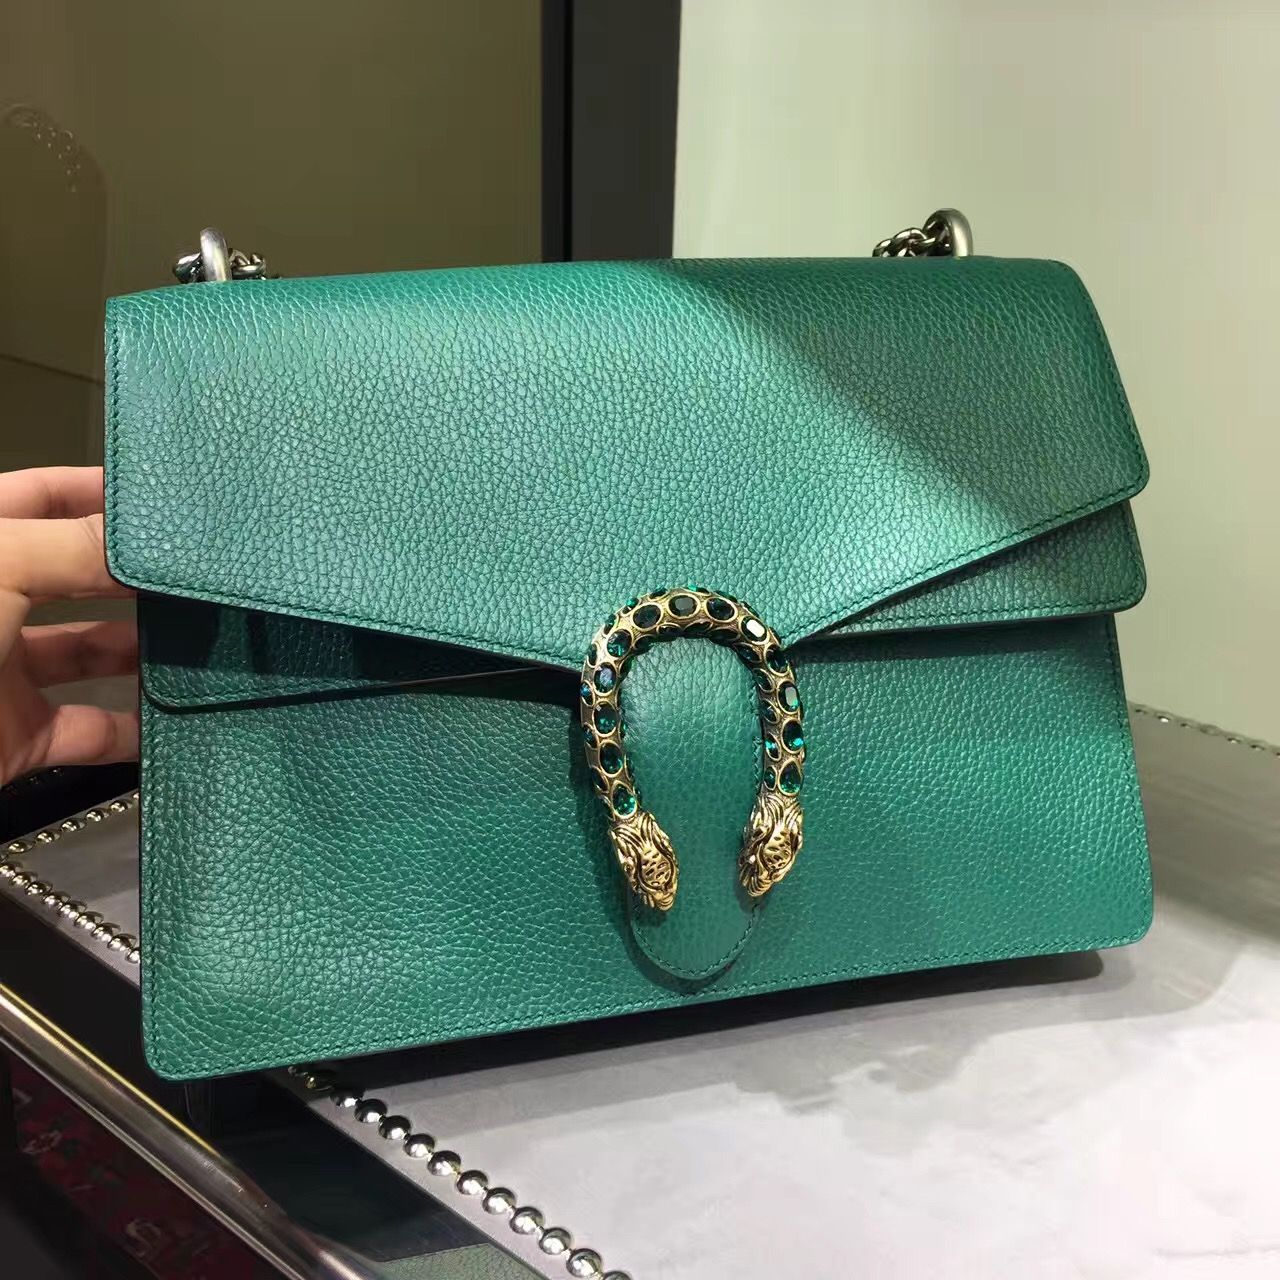 91400276834c92 Discount price green leather Gucci Dionysus shoulder bag #gucci #dionysus # bag #snake #guccipython